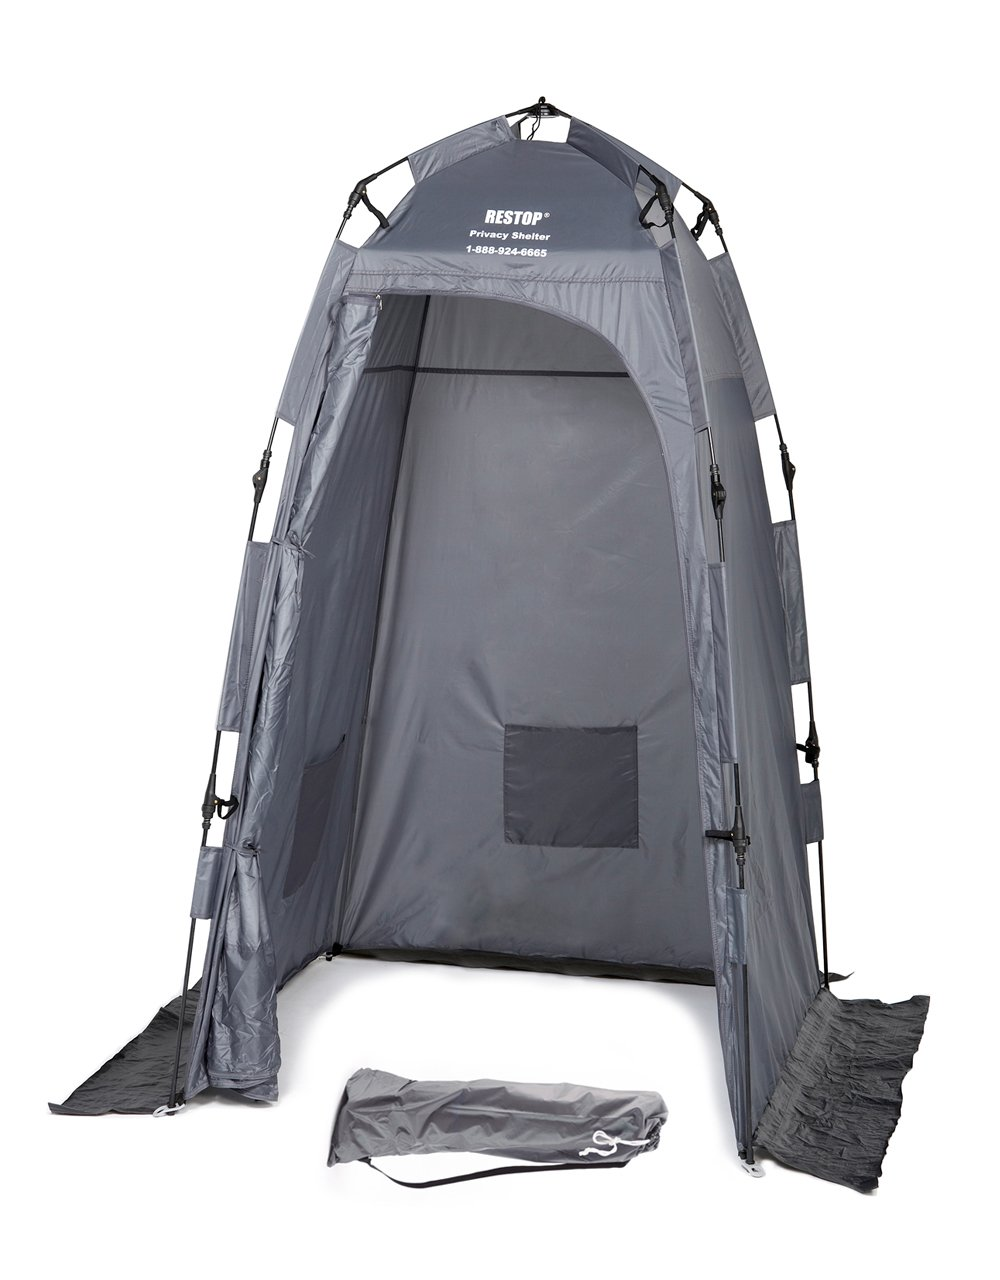 RESTOP Grey Shelter with Carry Case by RESTOP   B007OOJ948